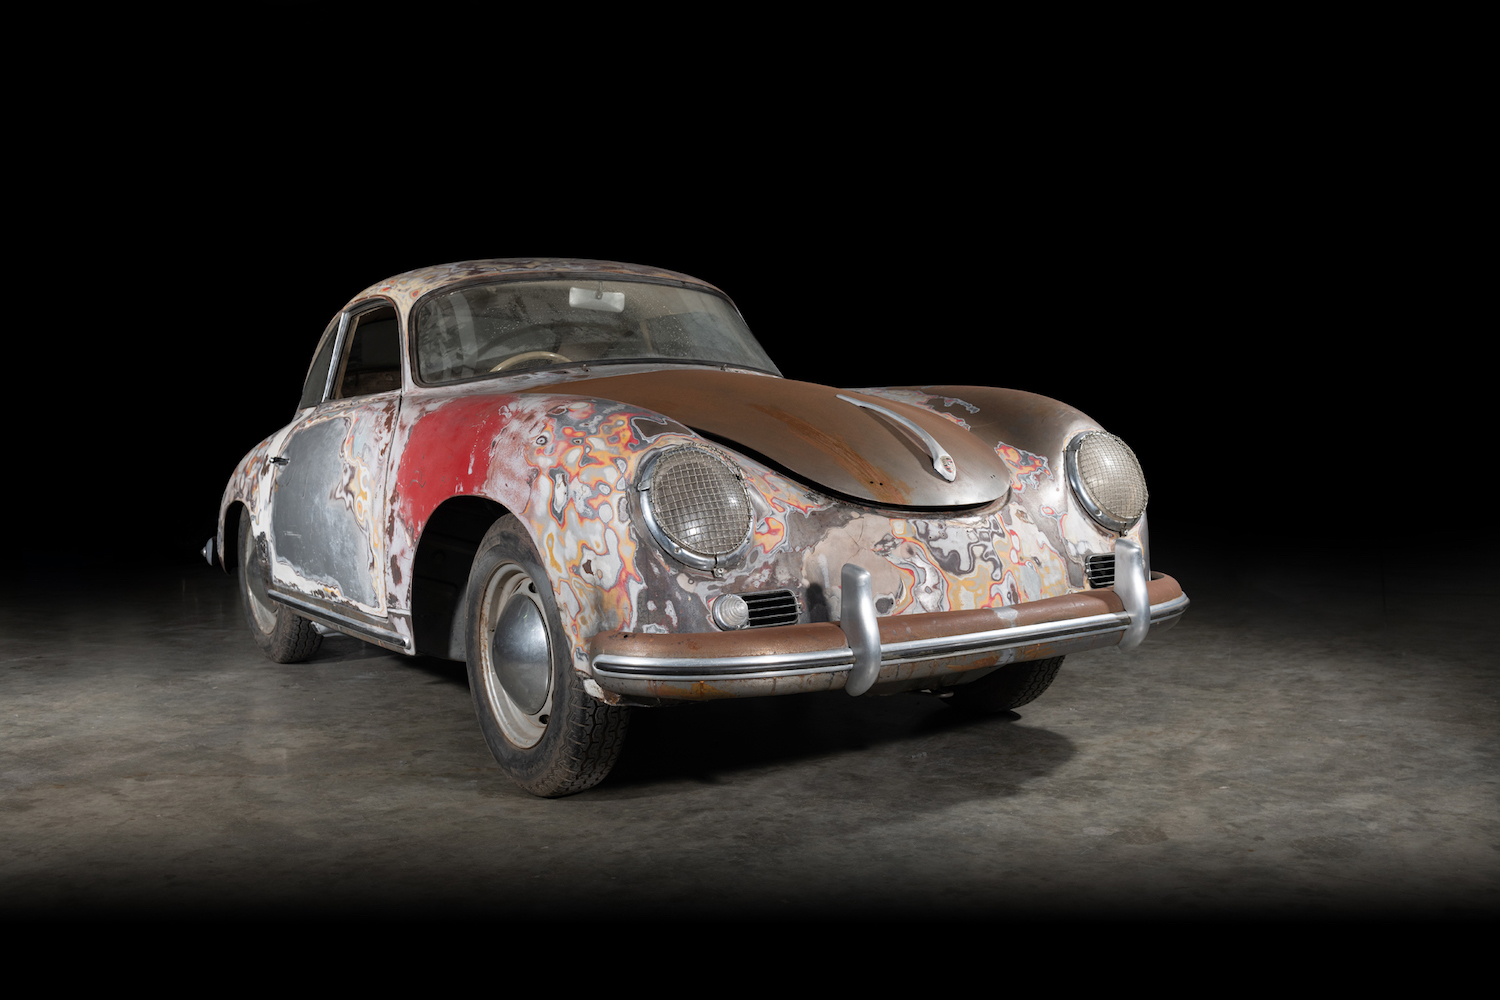 To concours or not to concours this Porsche 356A coupé, that is the question thumbnail